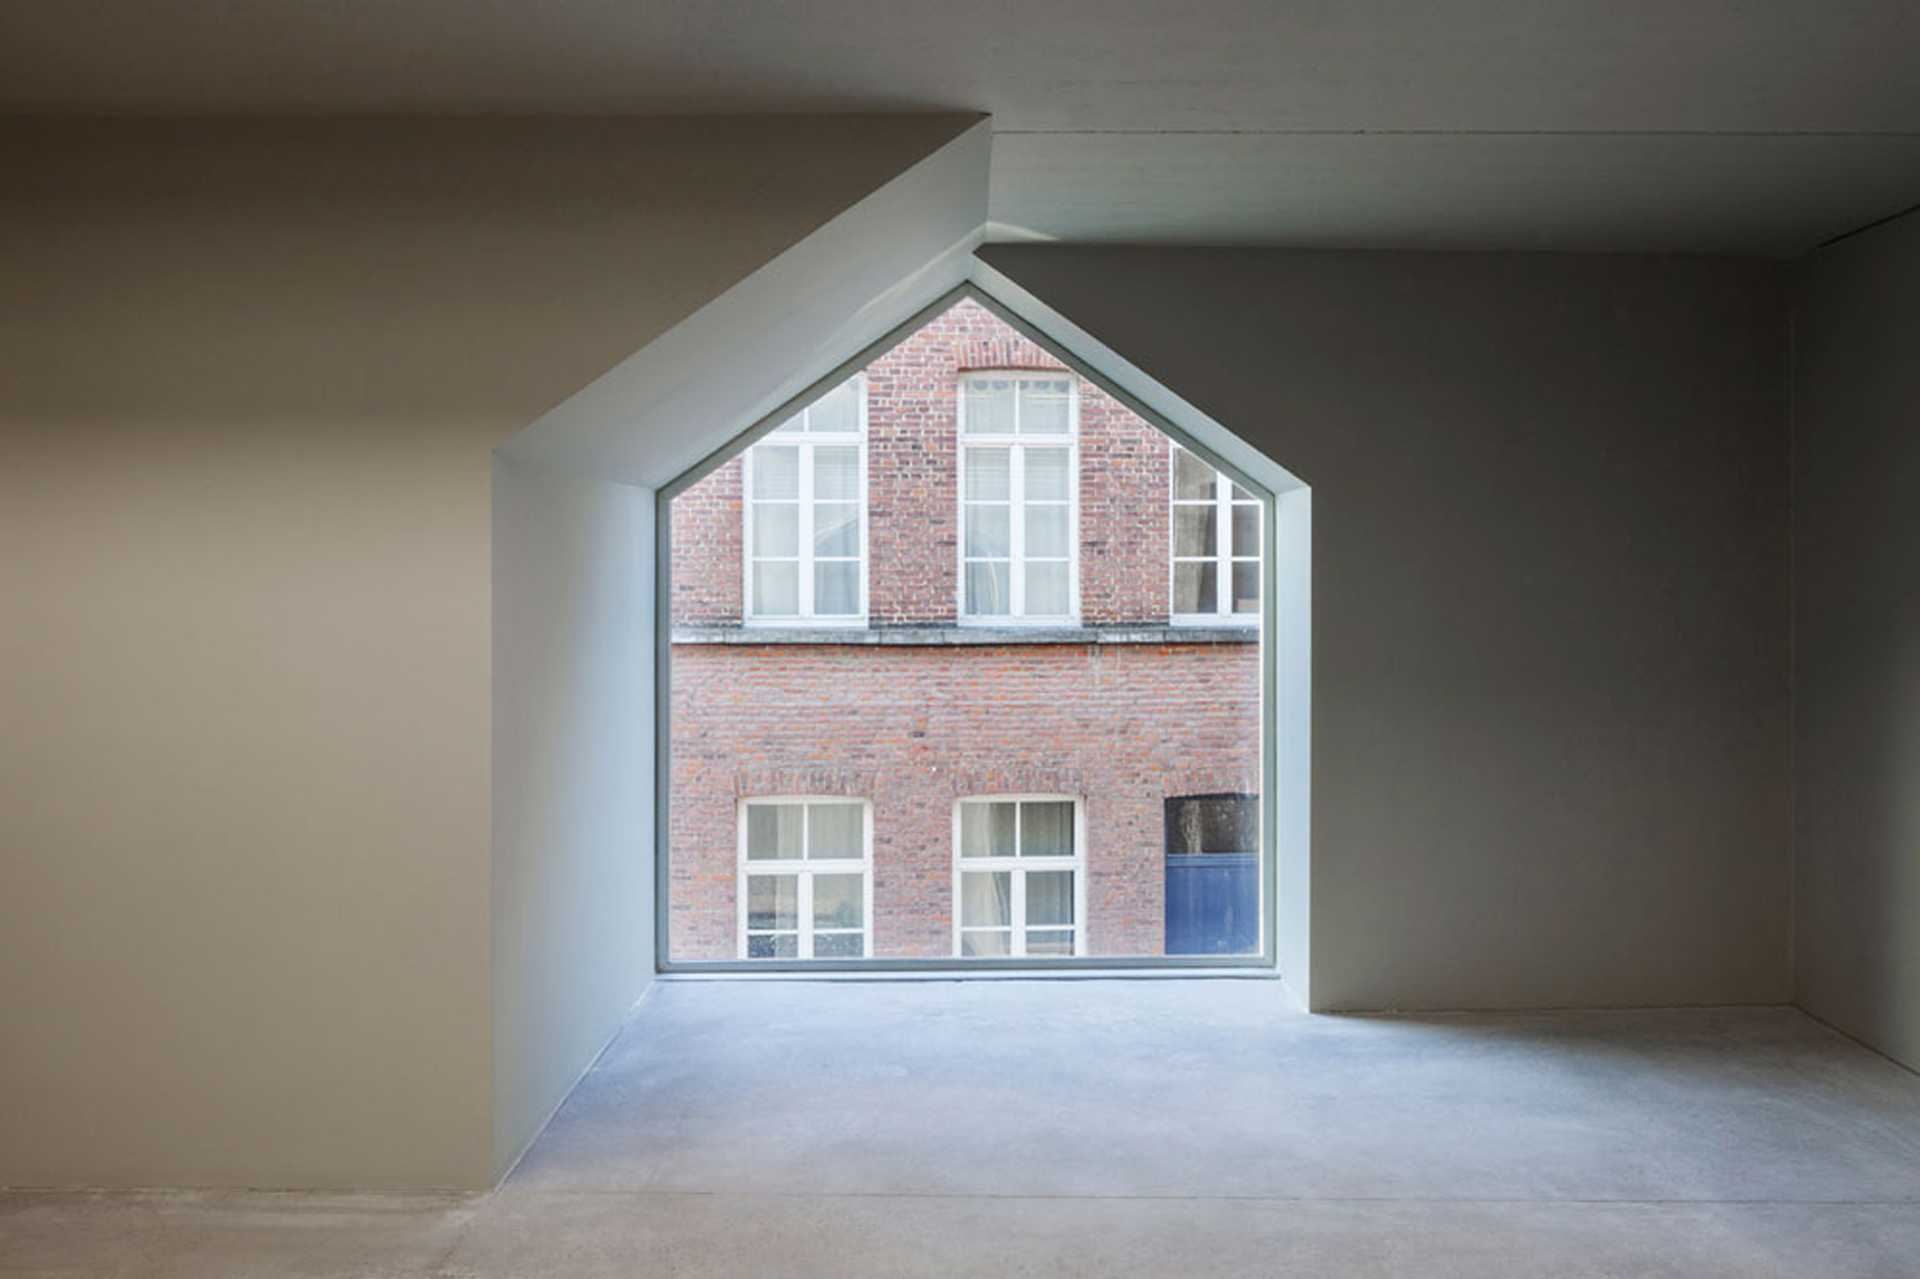 Architecture School in Tournai  - 5.0 38